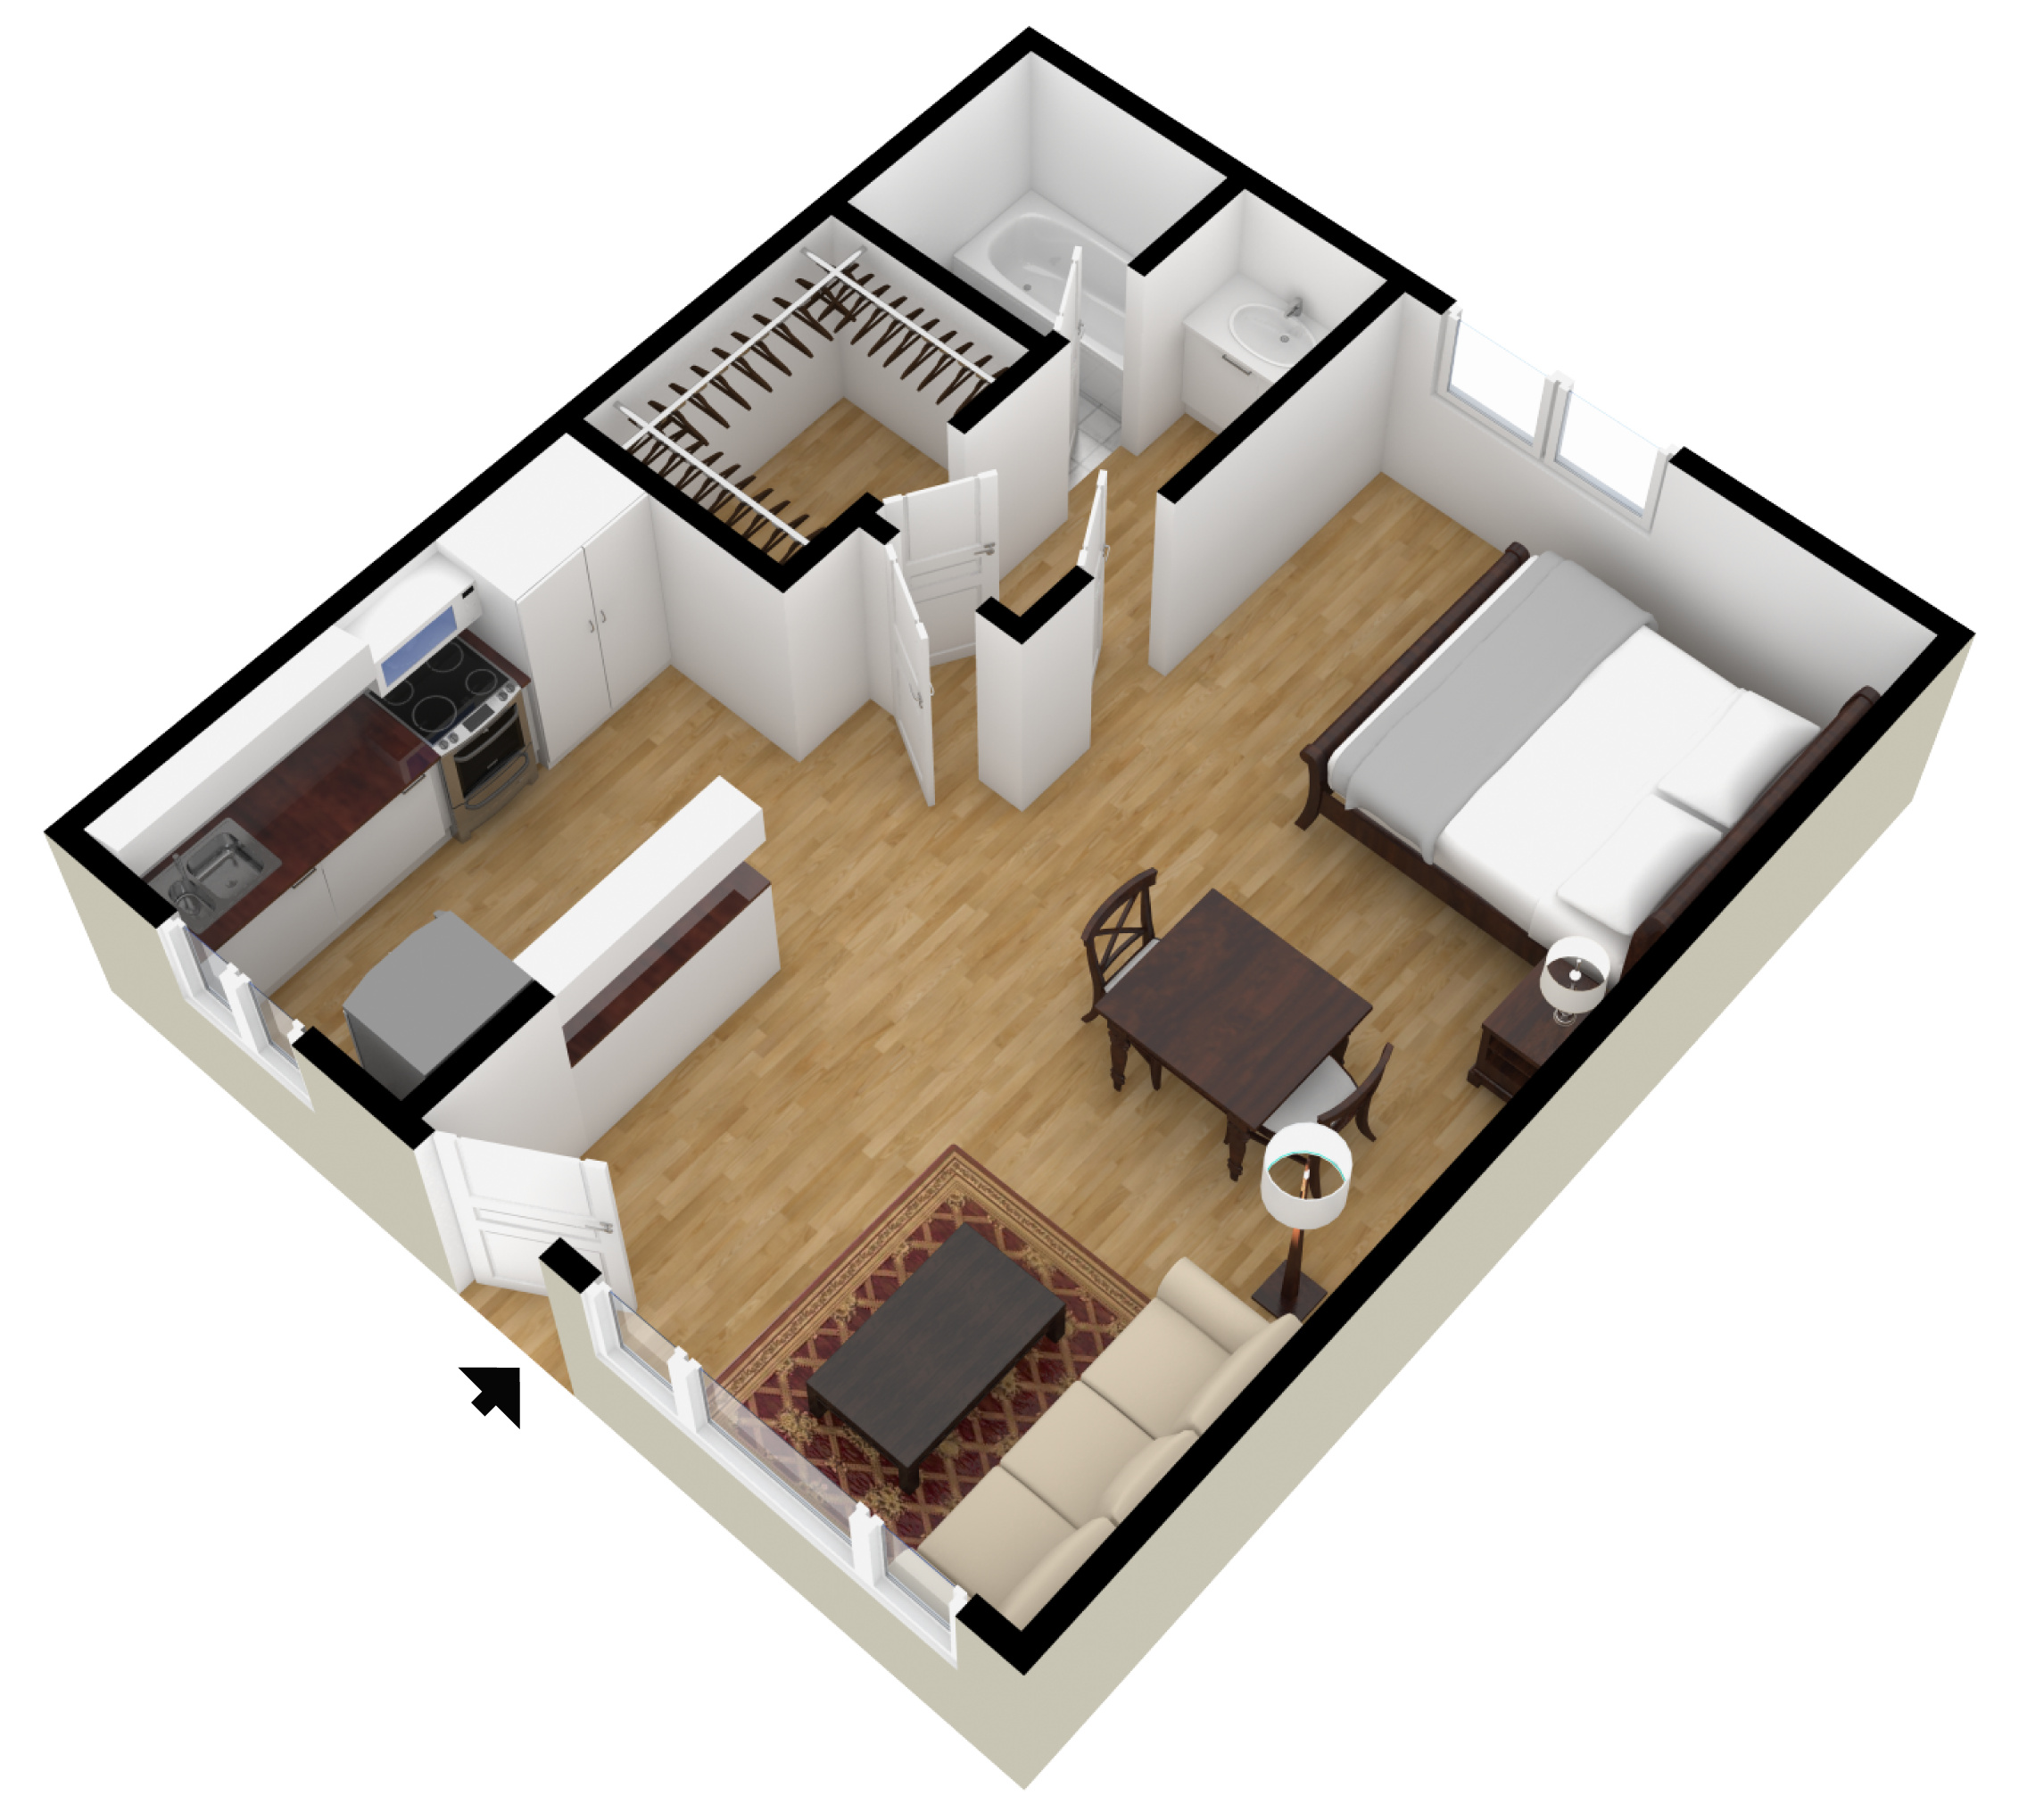 Studio 1 2 Bedroom Floor Plans City Plaza Apartments